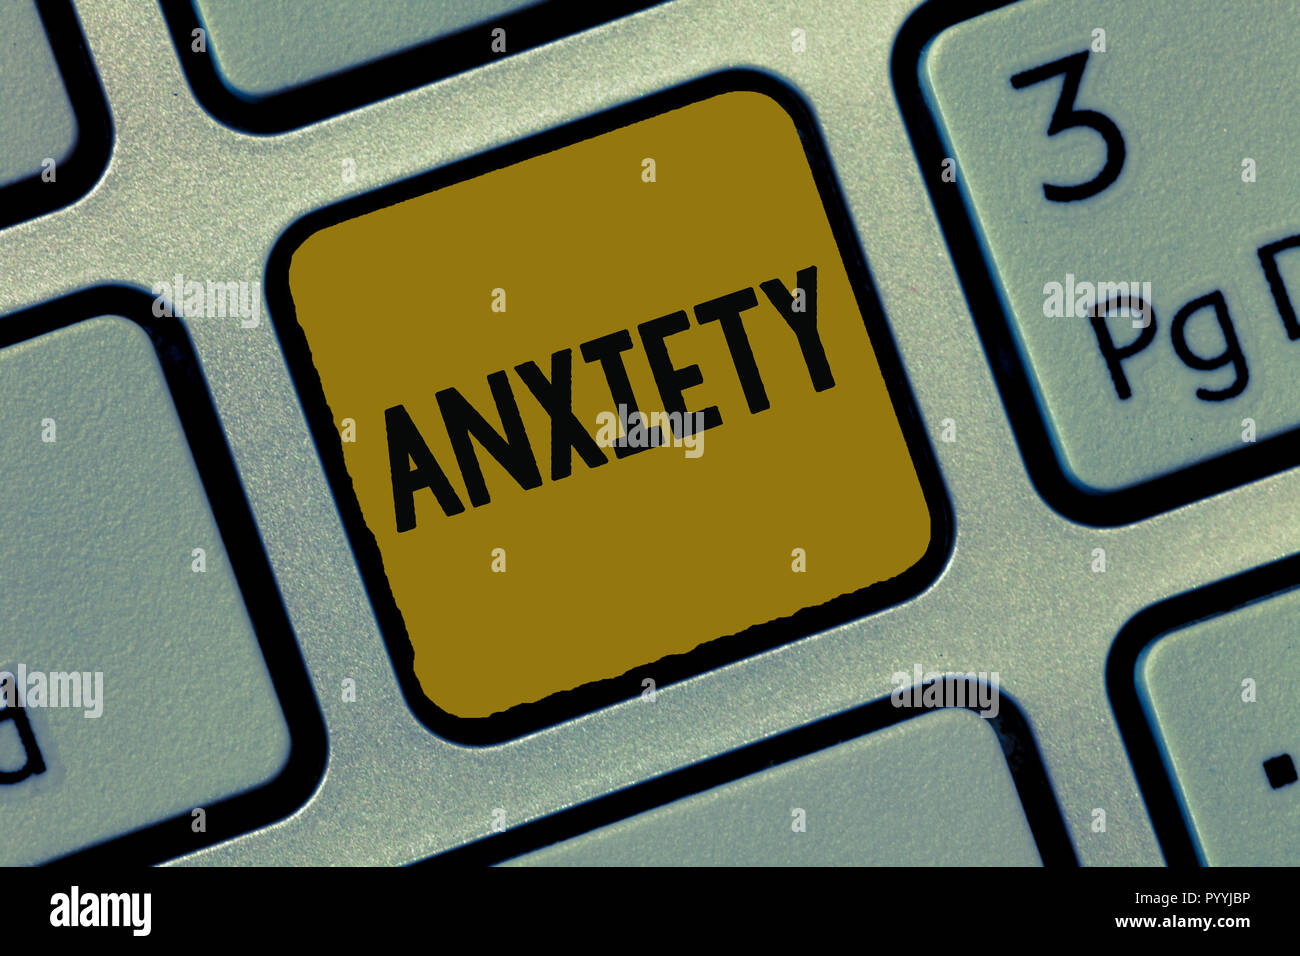 Text sign showing Anxiety. Conceptual photo Excessive uneasiness and apprehension Panic attack syndrome. - Stock Image